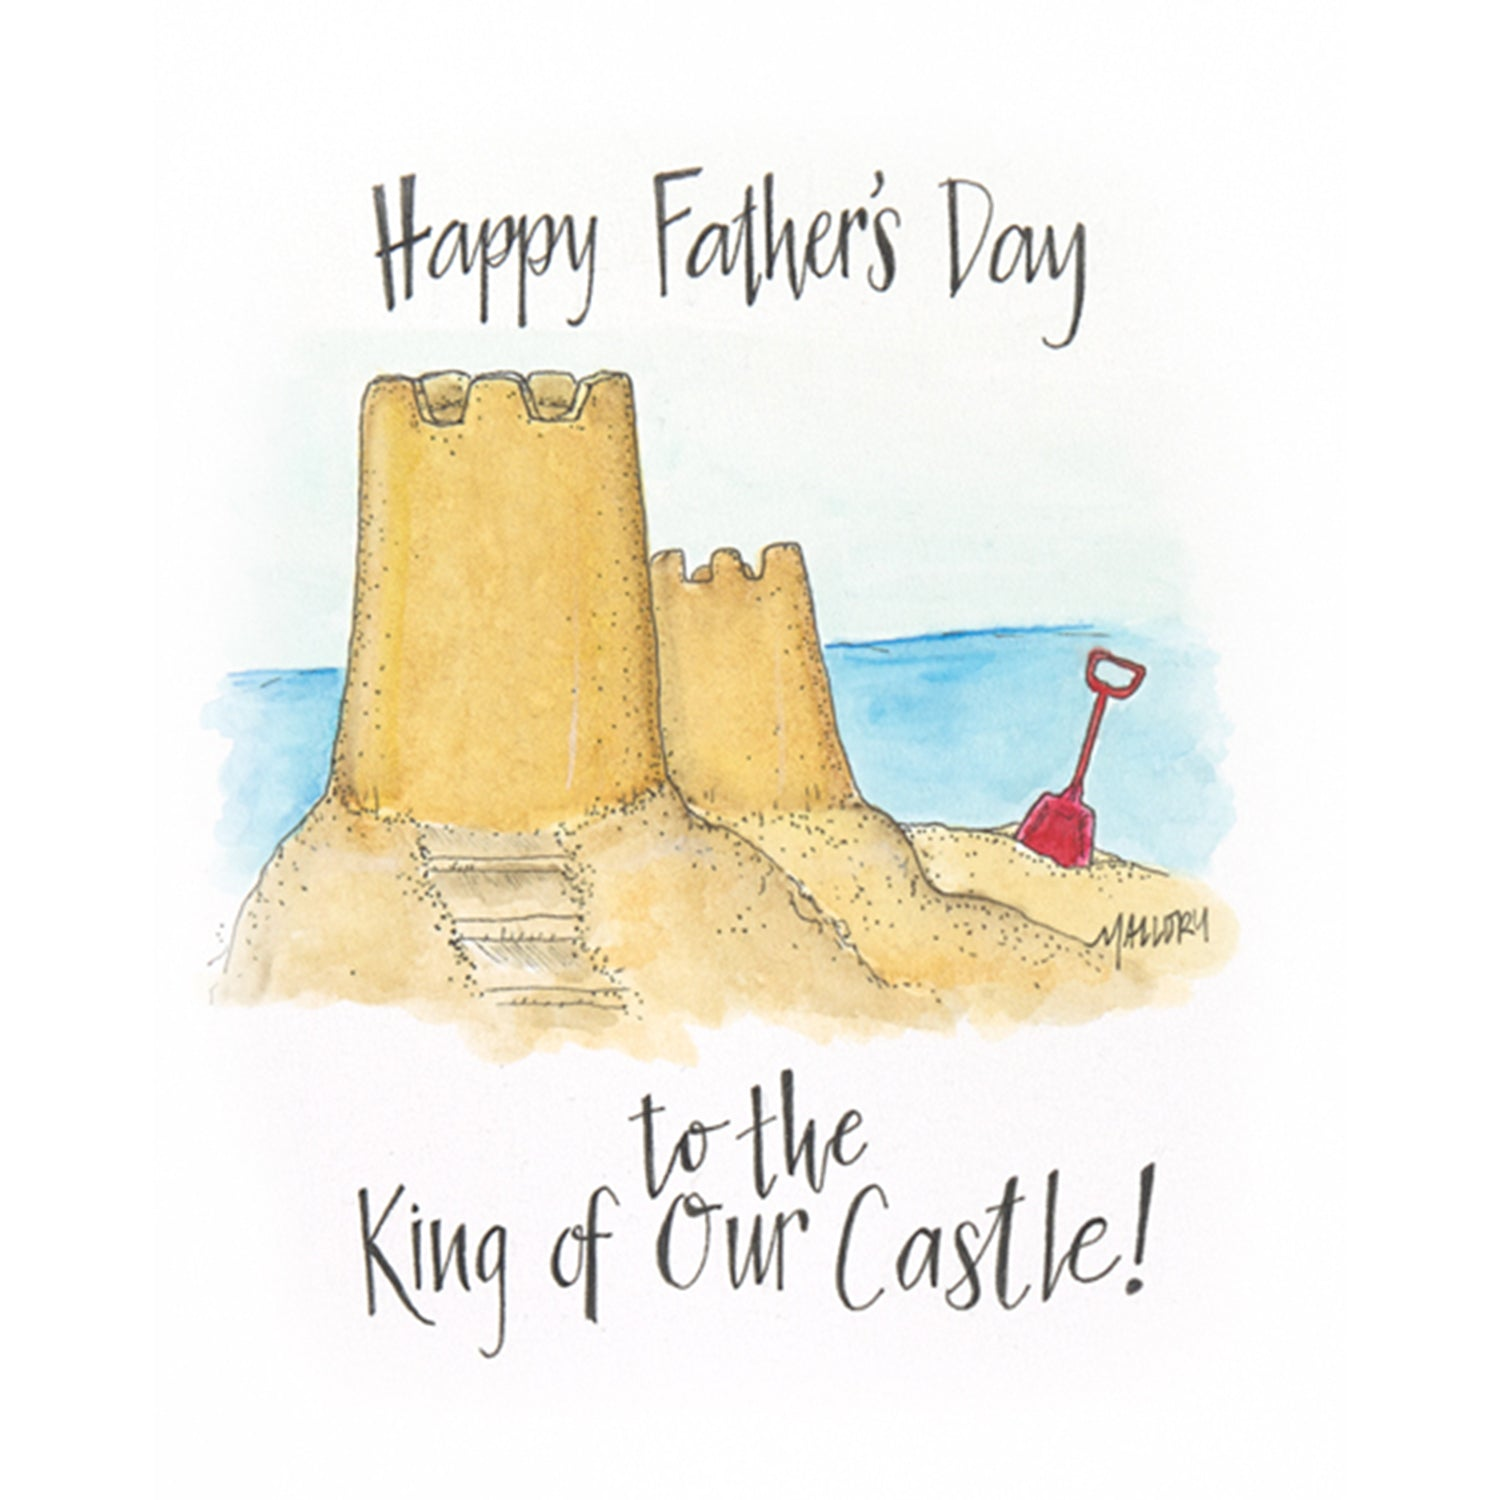 Father's Day card for beach bum, card for beach dad, Father's Day card with sandcastle, sweet card for beach dad